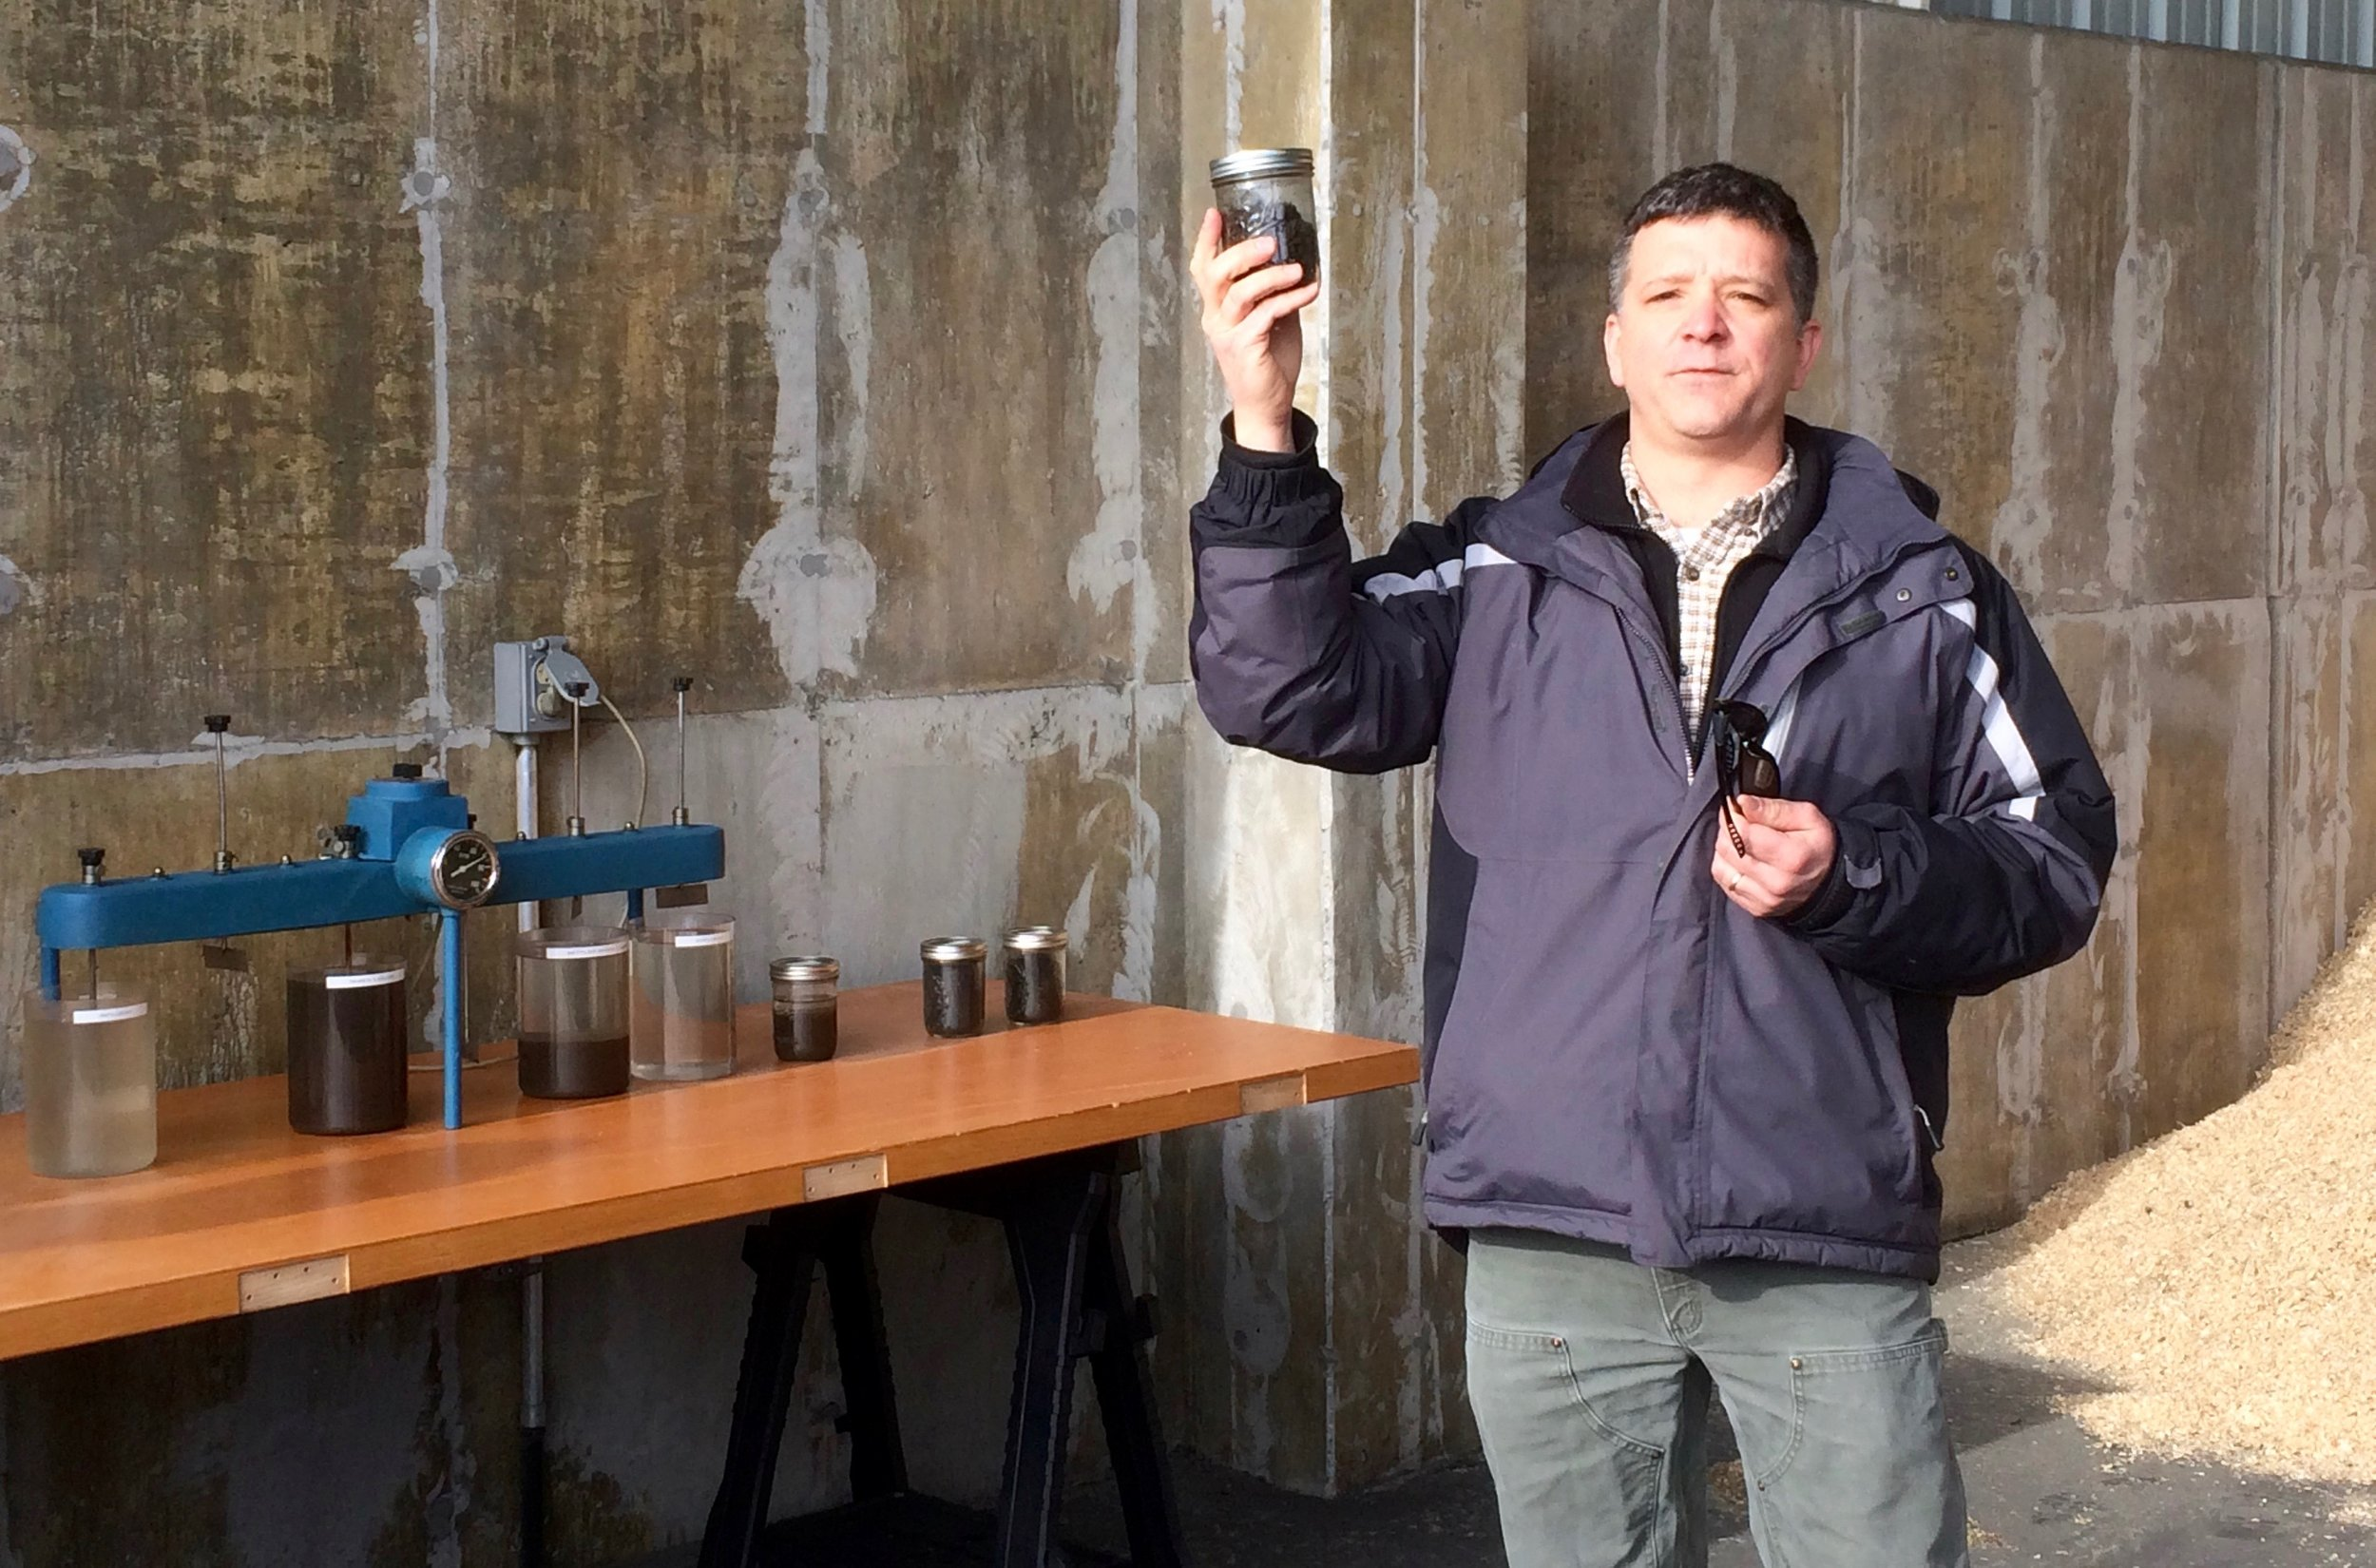 Andre Brousseau, Superintendent of Sanford Sewerage District, shows a sample of dewatered wastewater solids that go into the biosolids compost. To the left is a model of the wastewater treatment process that produces the solids.